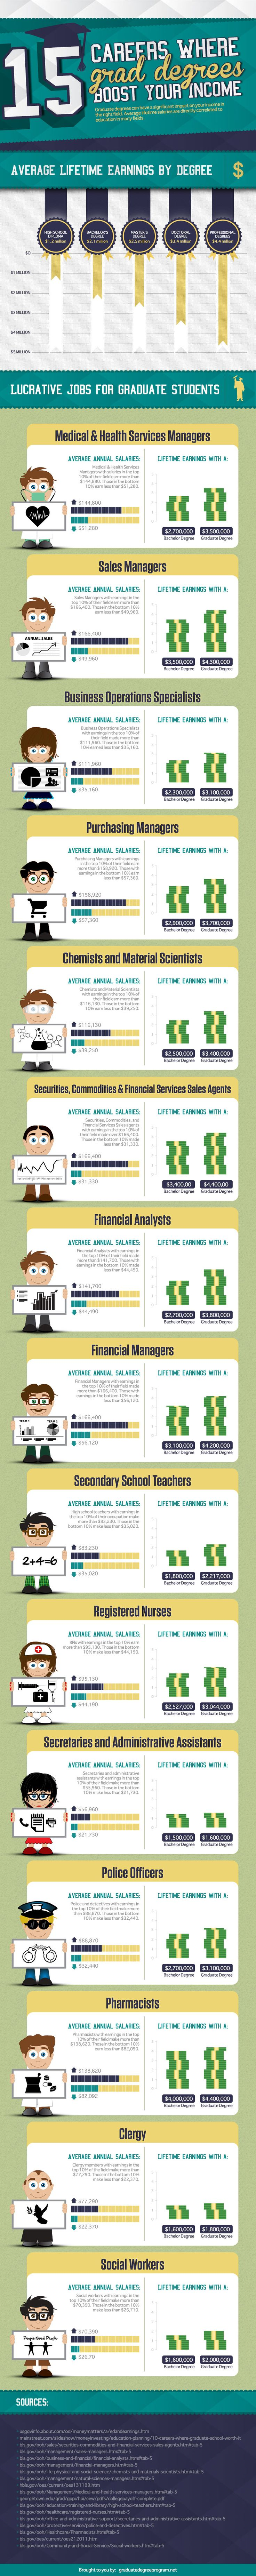 15 Careers Where Grad Degrees Boost Your Income #infographic